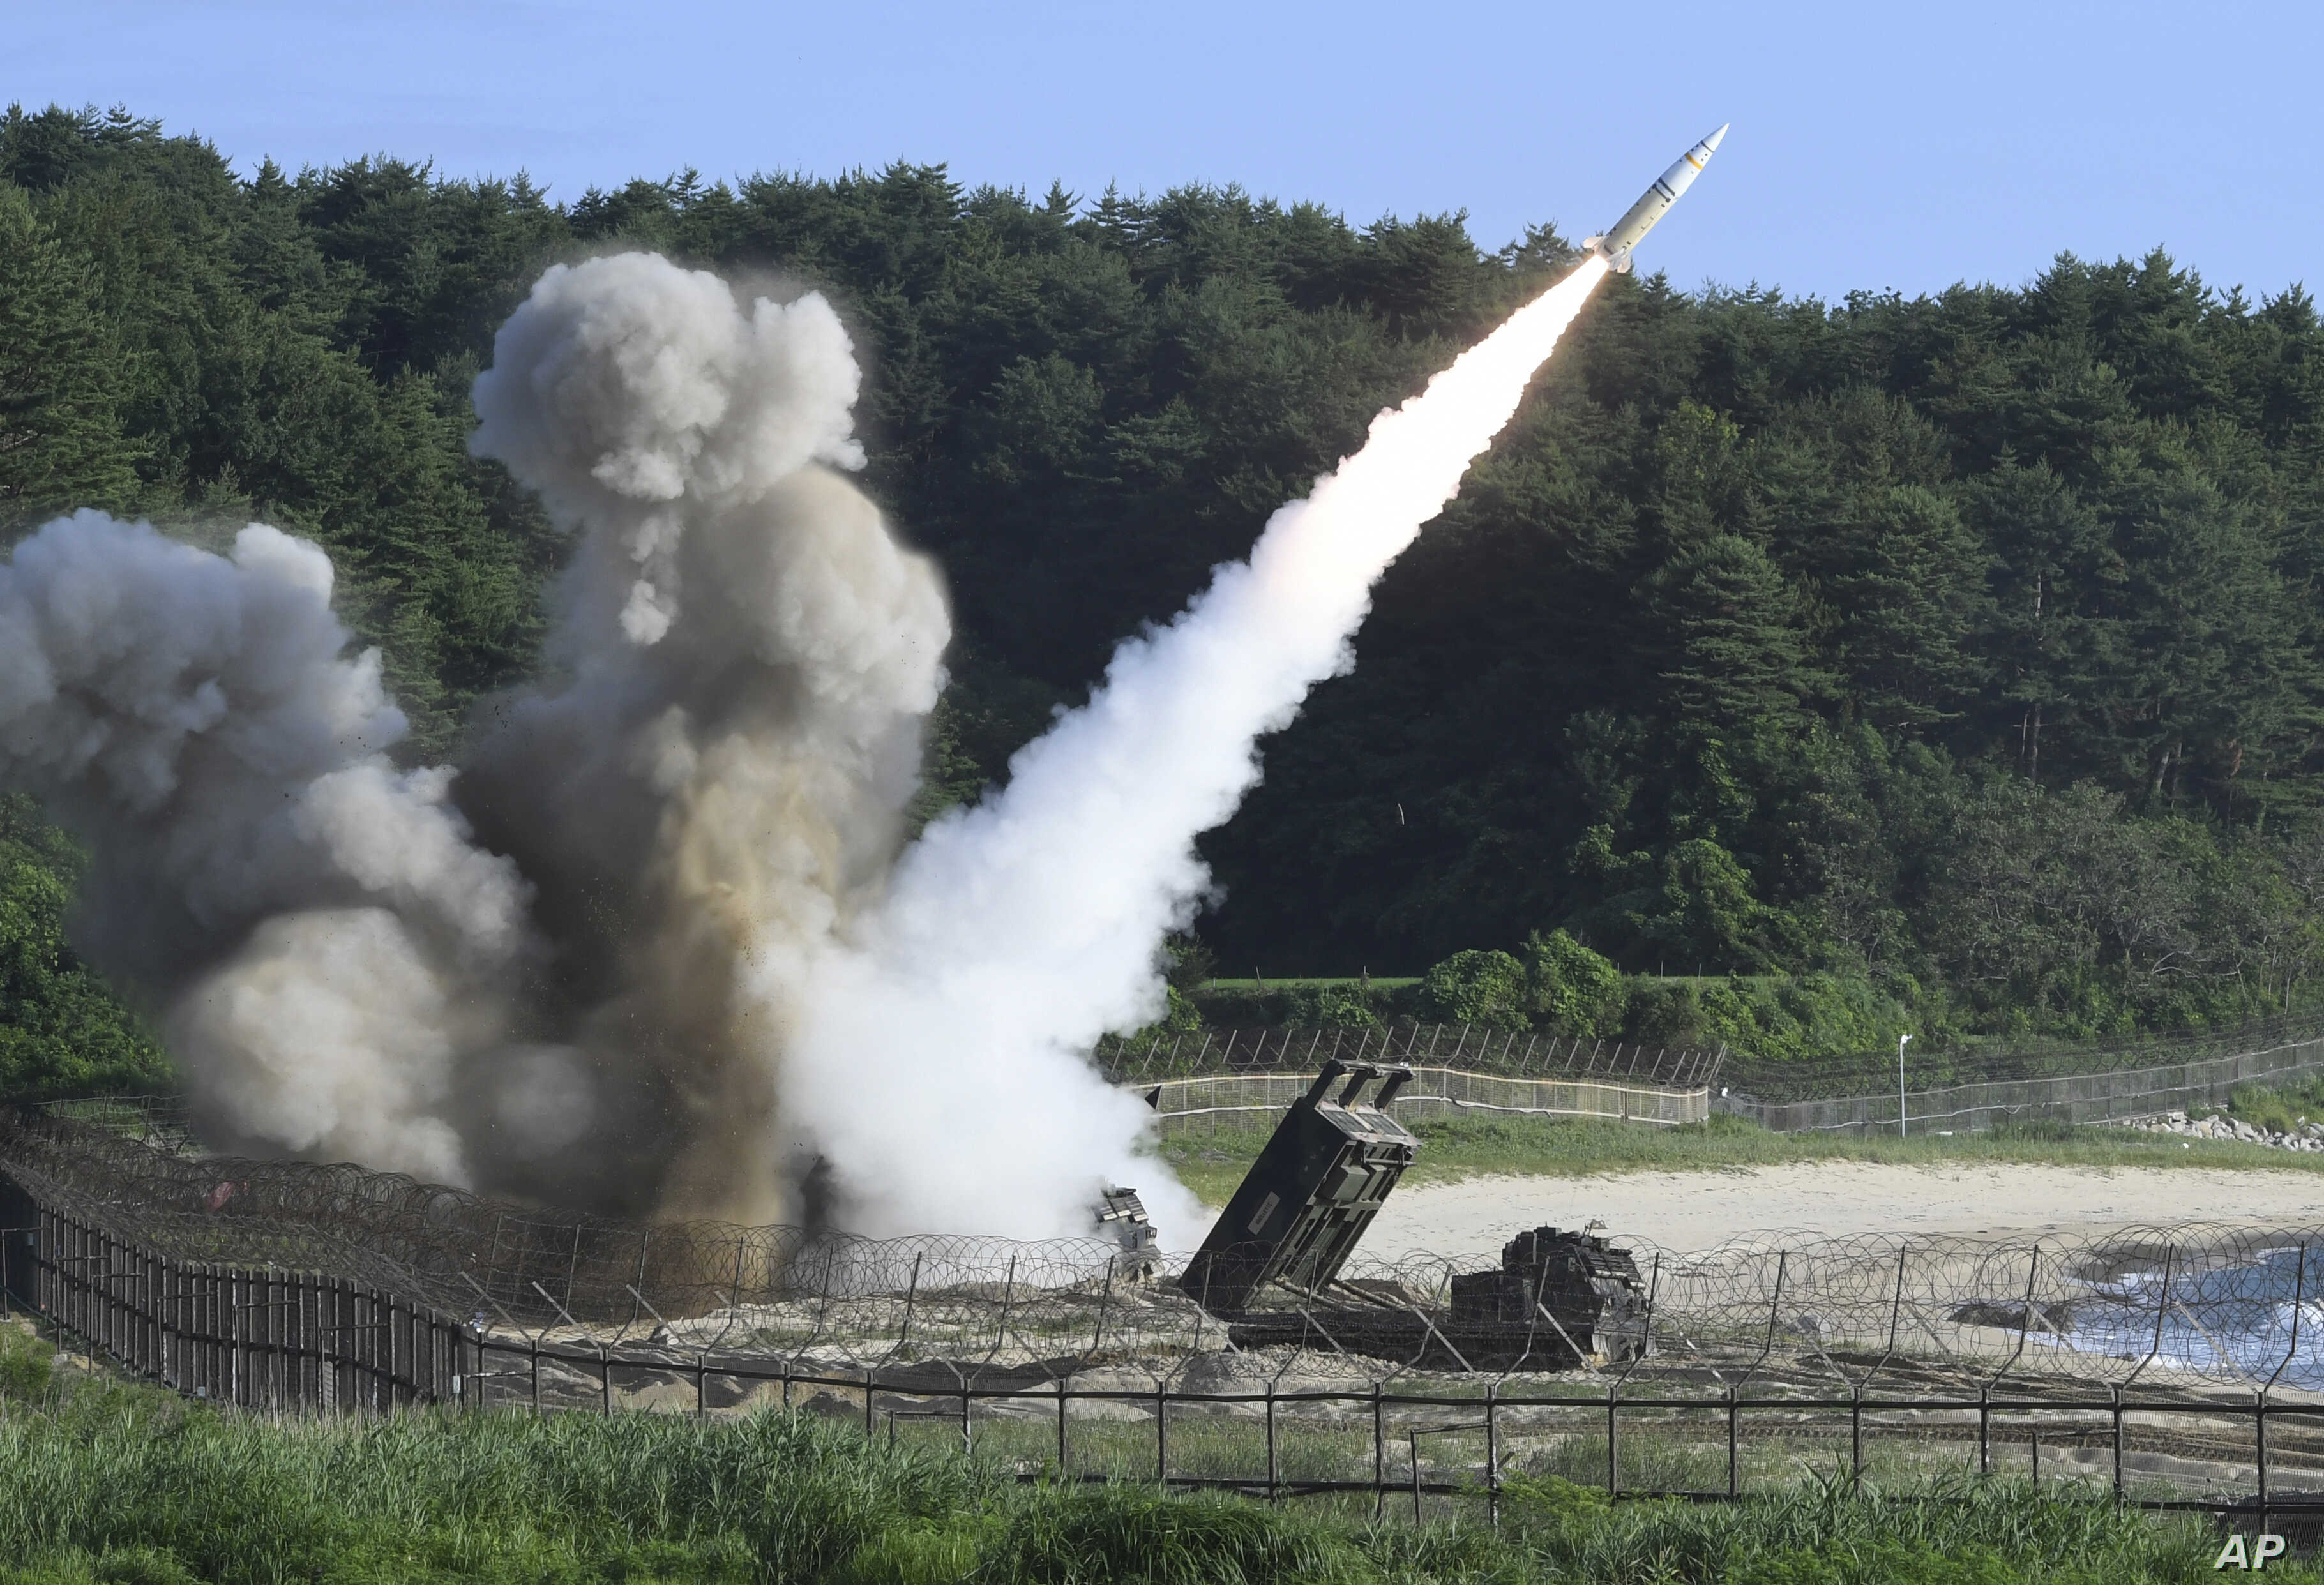 In this photo provided by South Korea Defense Ministry, a U.S. MGM-140 Army Tactical Missile is fired during the combined military exercise between the U.S. and South Korea against North Korea at an undisclosed location in South Korea, July 5, 2017.